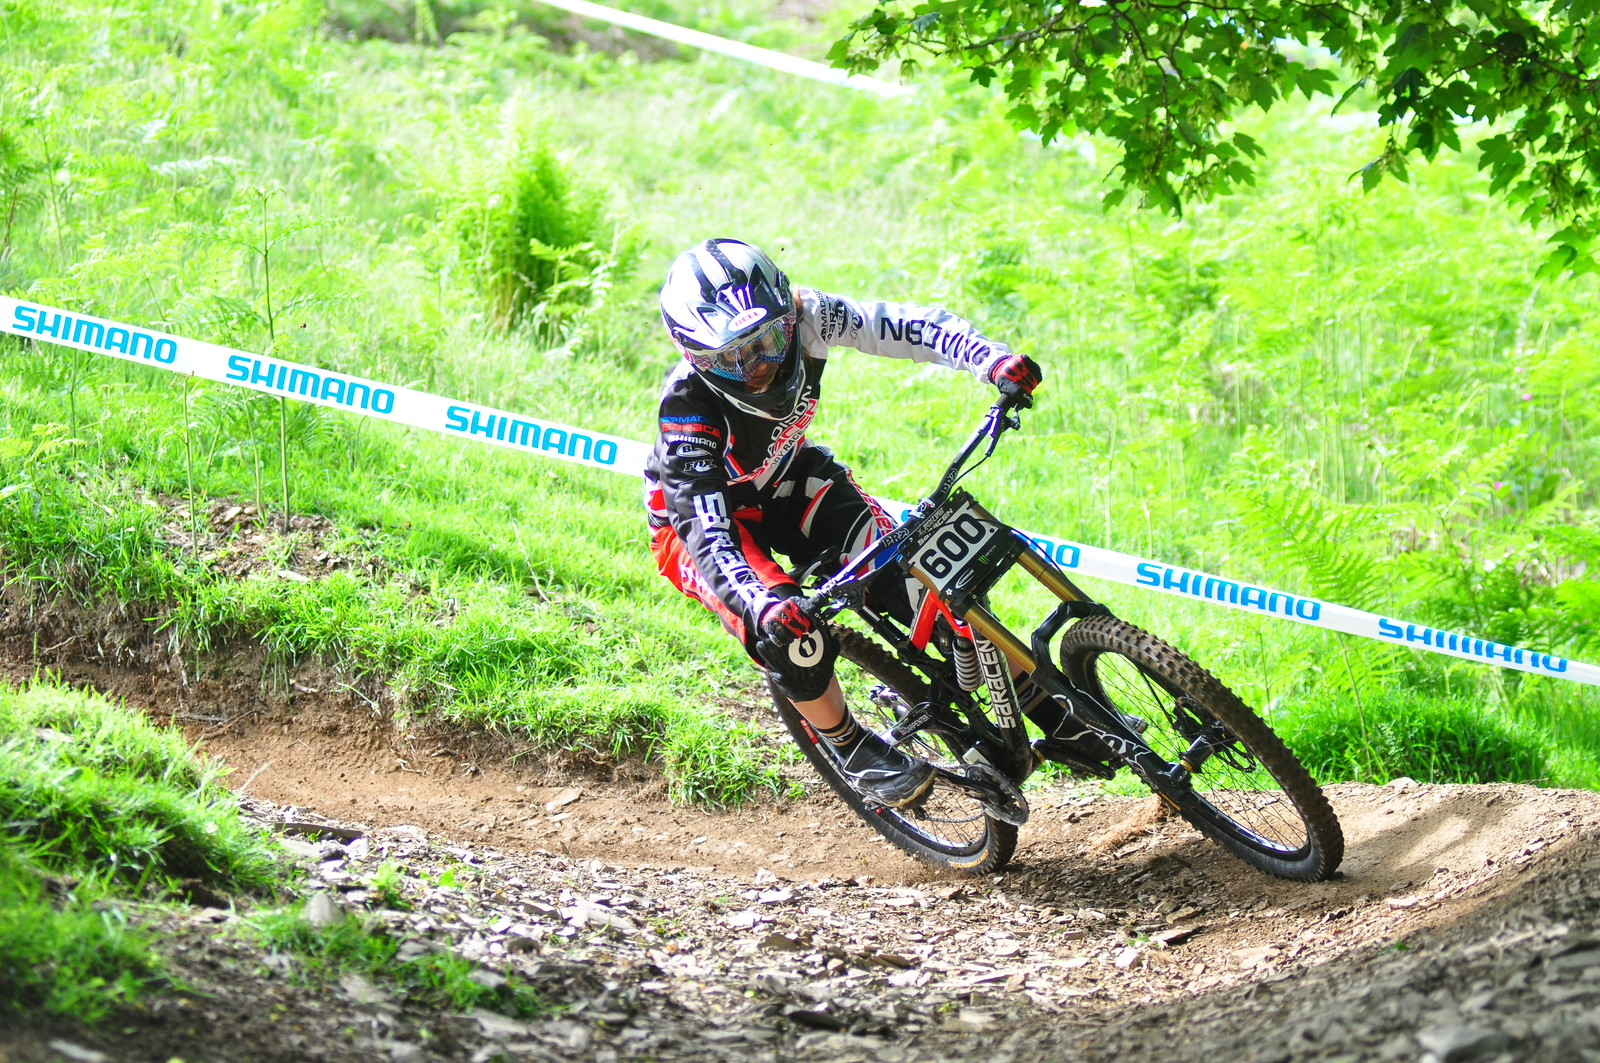 manon carpenter  - ianbritt - Mountain Biking Pictures - Vital MTB